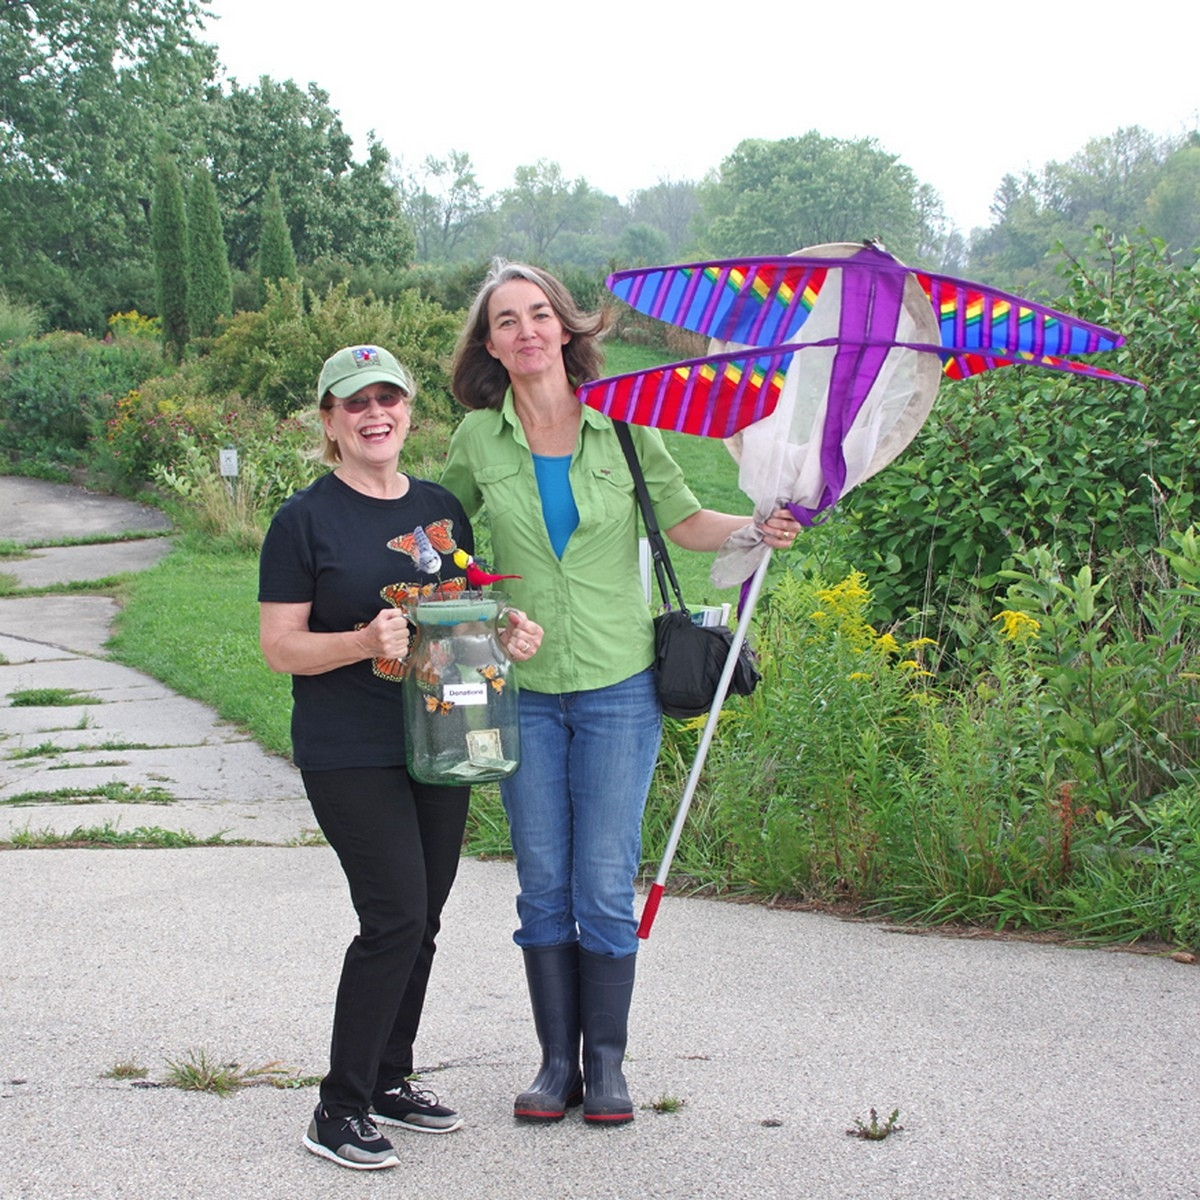 Two women outdoors with one holding a kite.